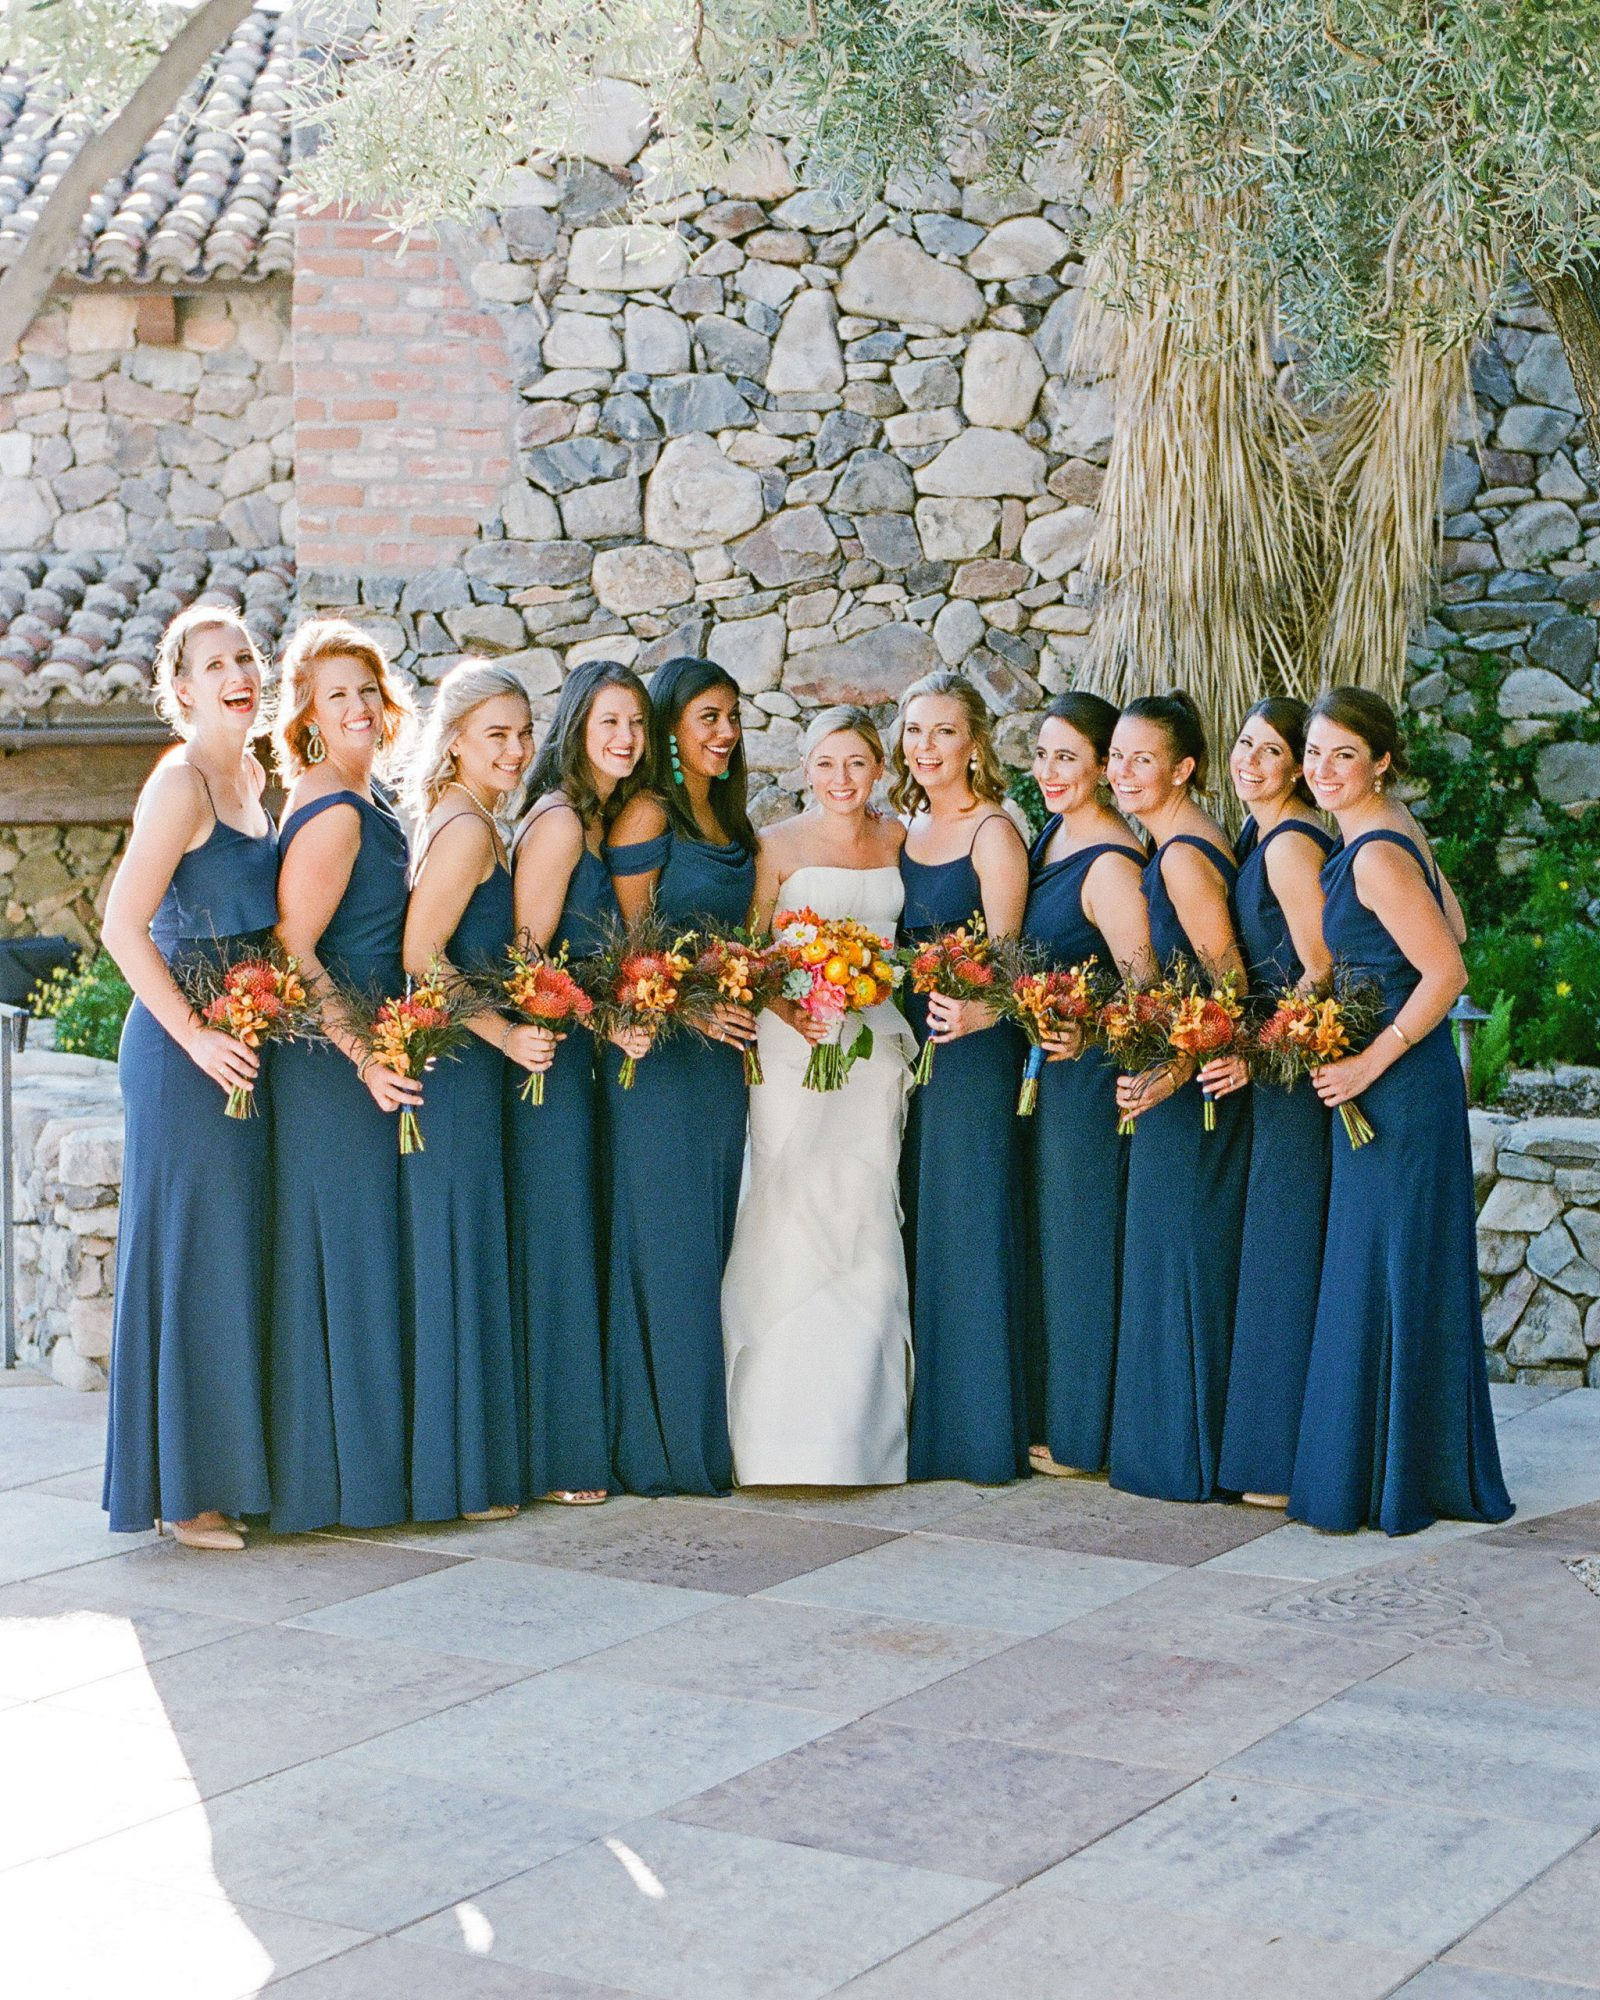 7 Tips To Make Shopping For Bridesmaids Dresses A Stress Free Experience Martha Stewart,Summer Elegant African Wedding Guest Dresses